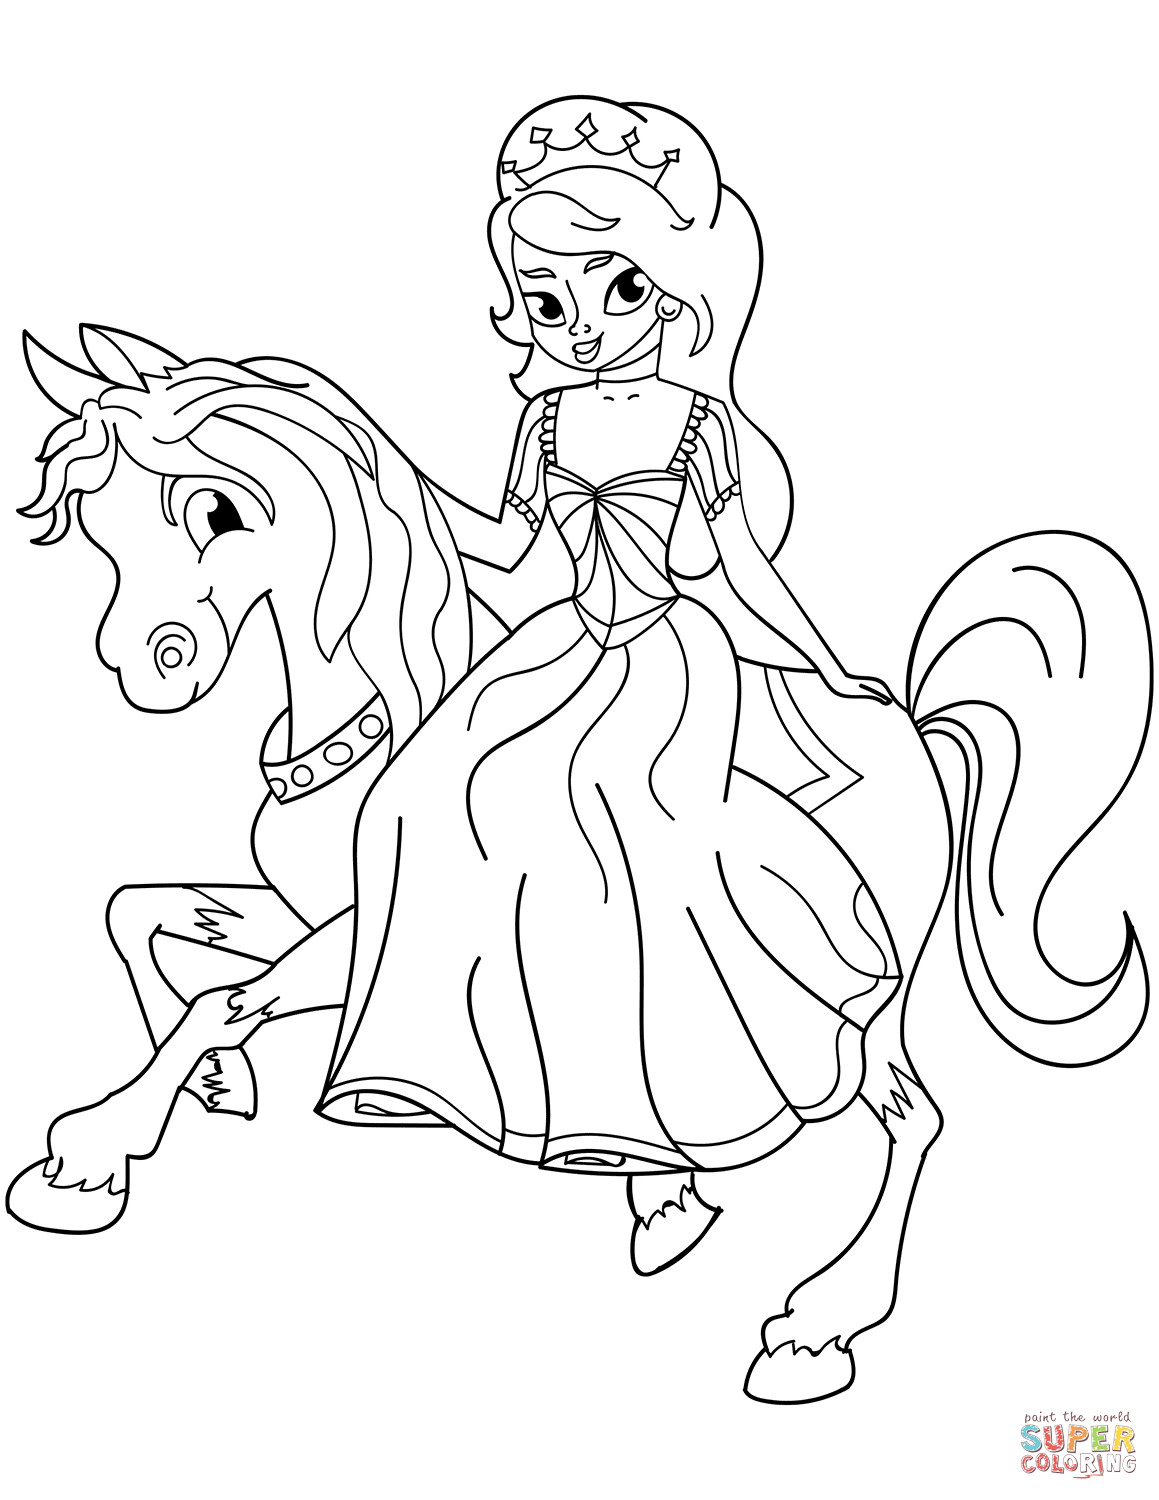 Best ideas about Printable Coloring Pages Princess . Save or Pin Princess Riding Horse coloring page Now.